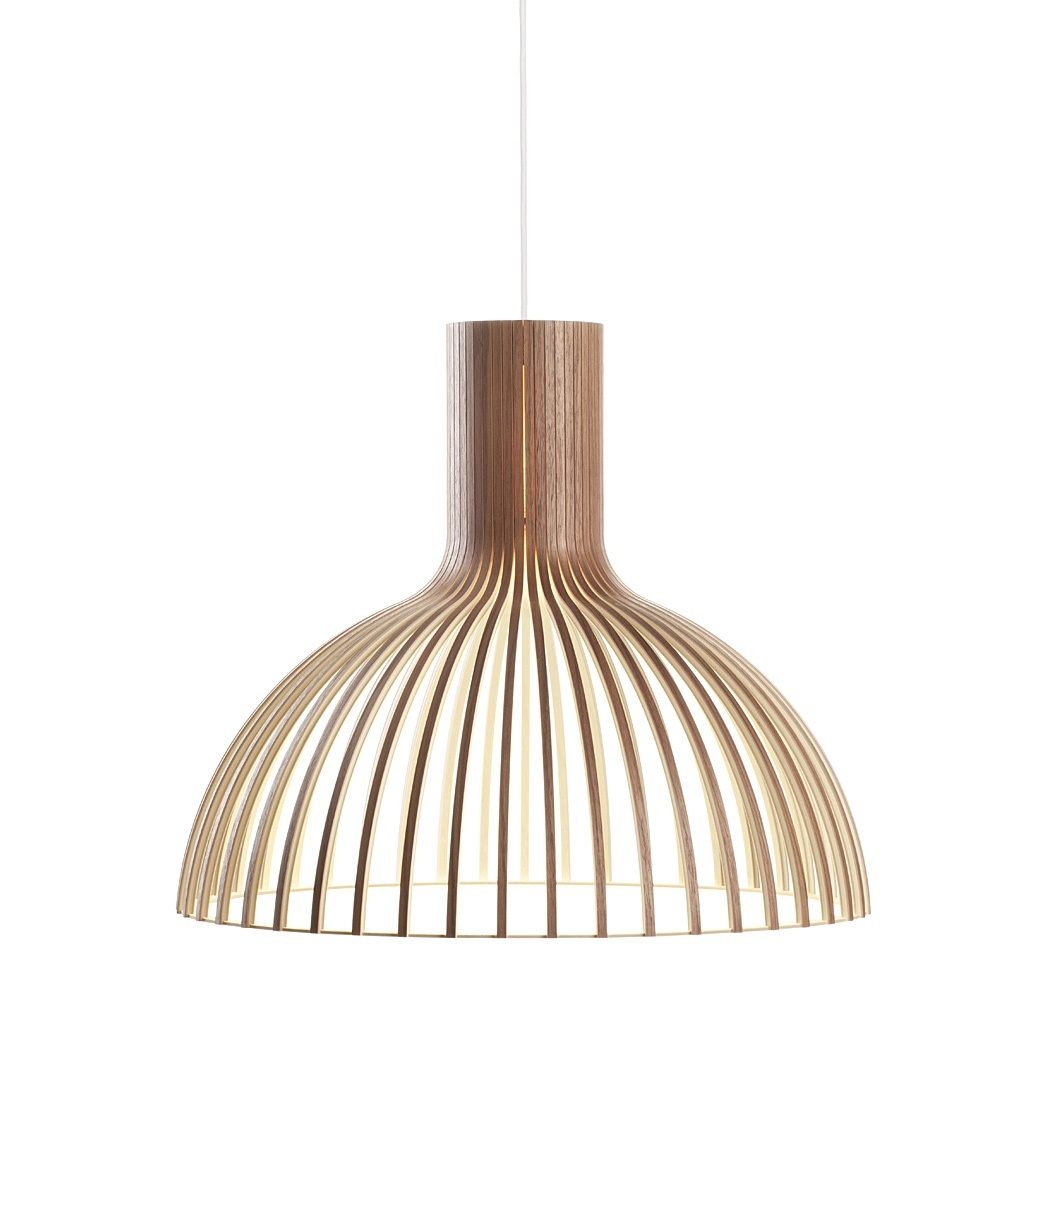 Secto Design Victo 4250 hanglamp-Walnoot